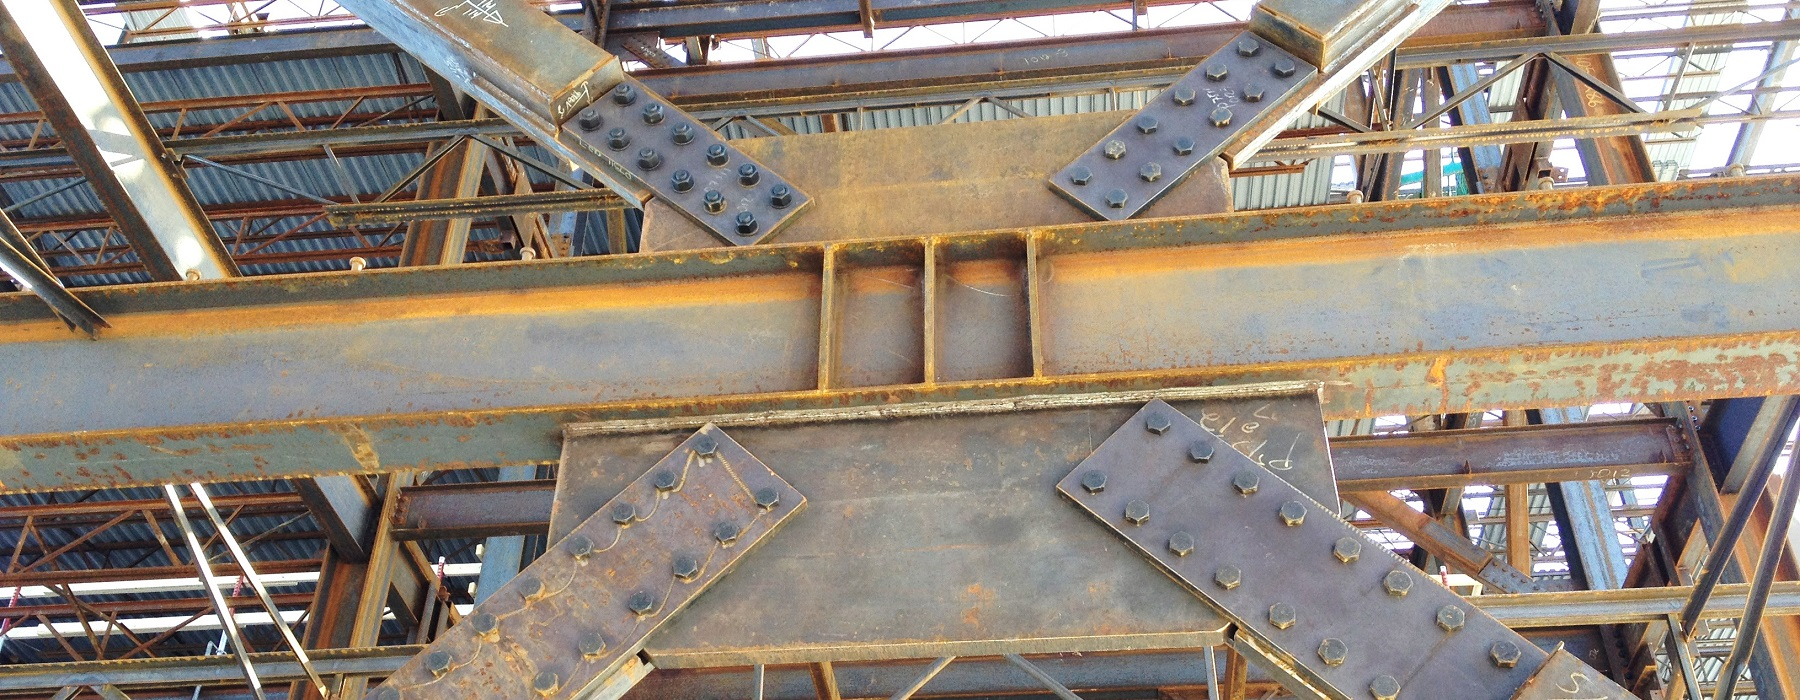 CONN Steel project by engineering firm in Montreal